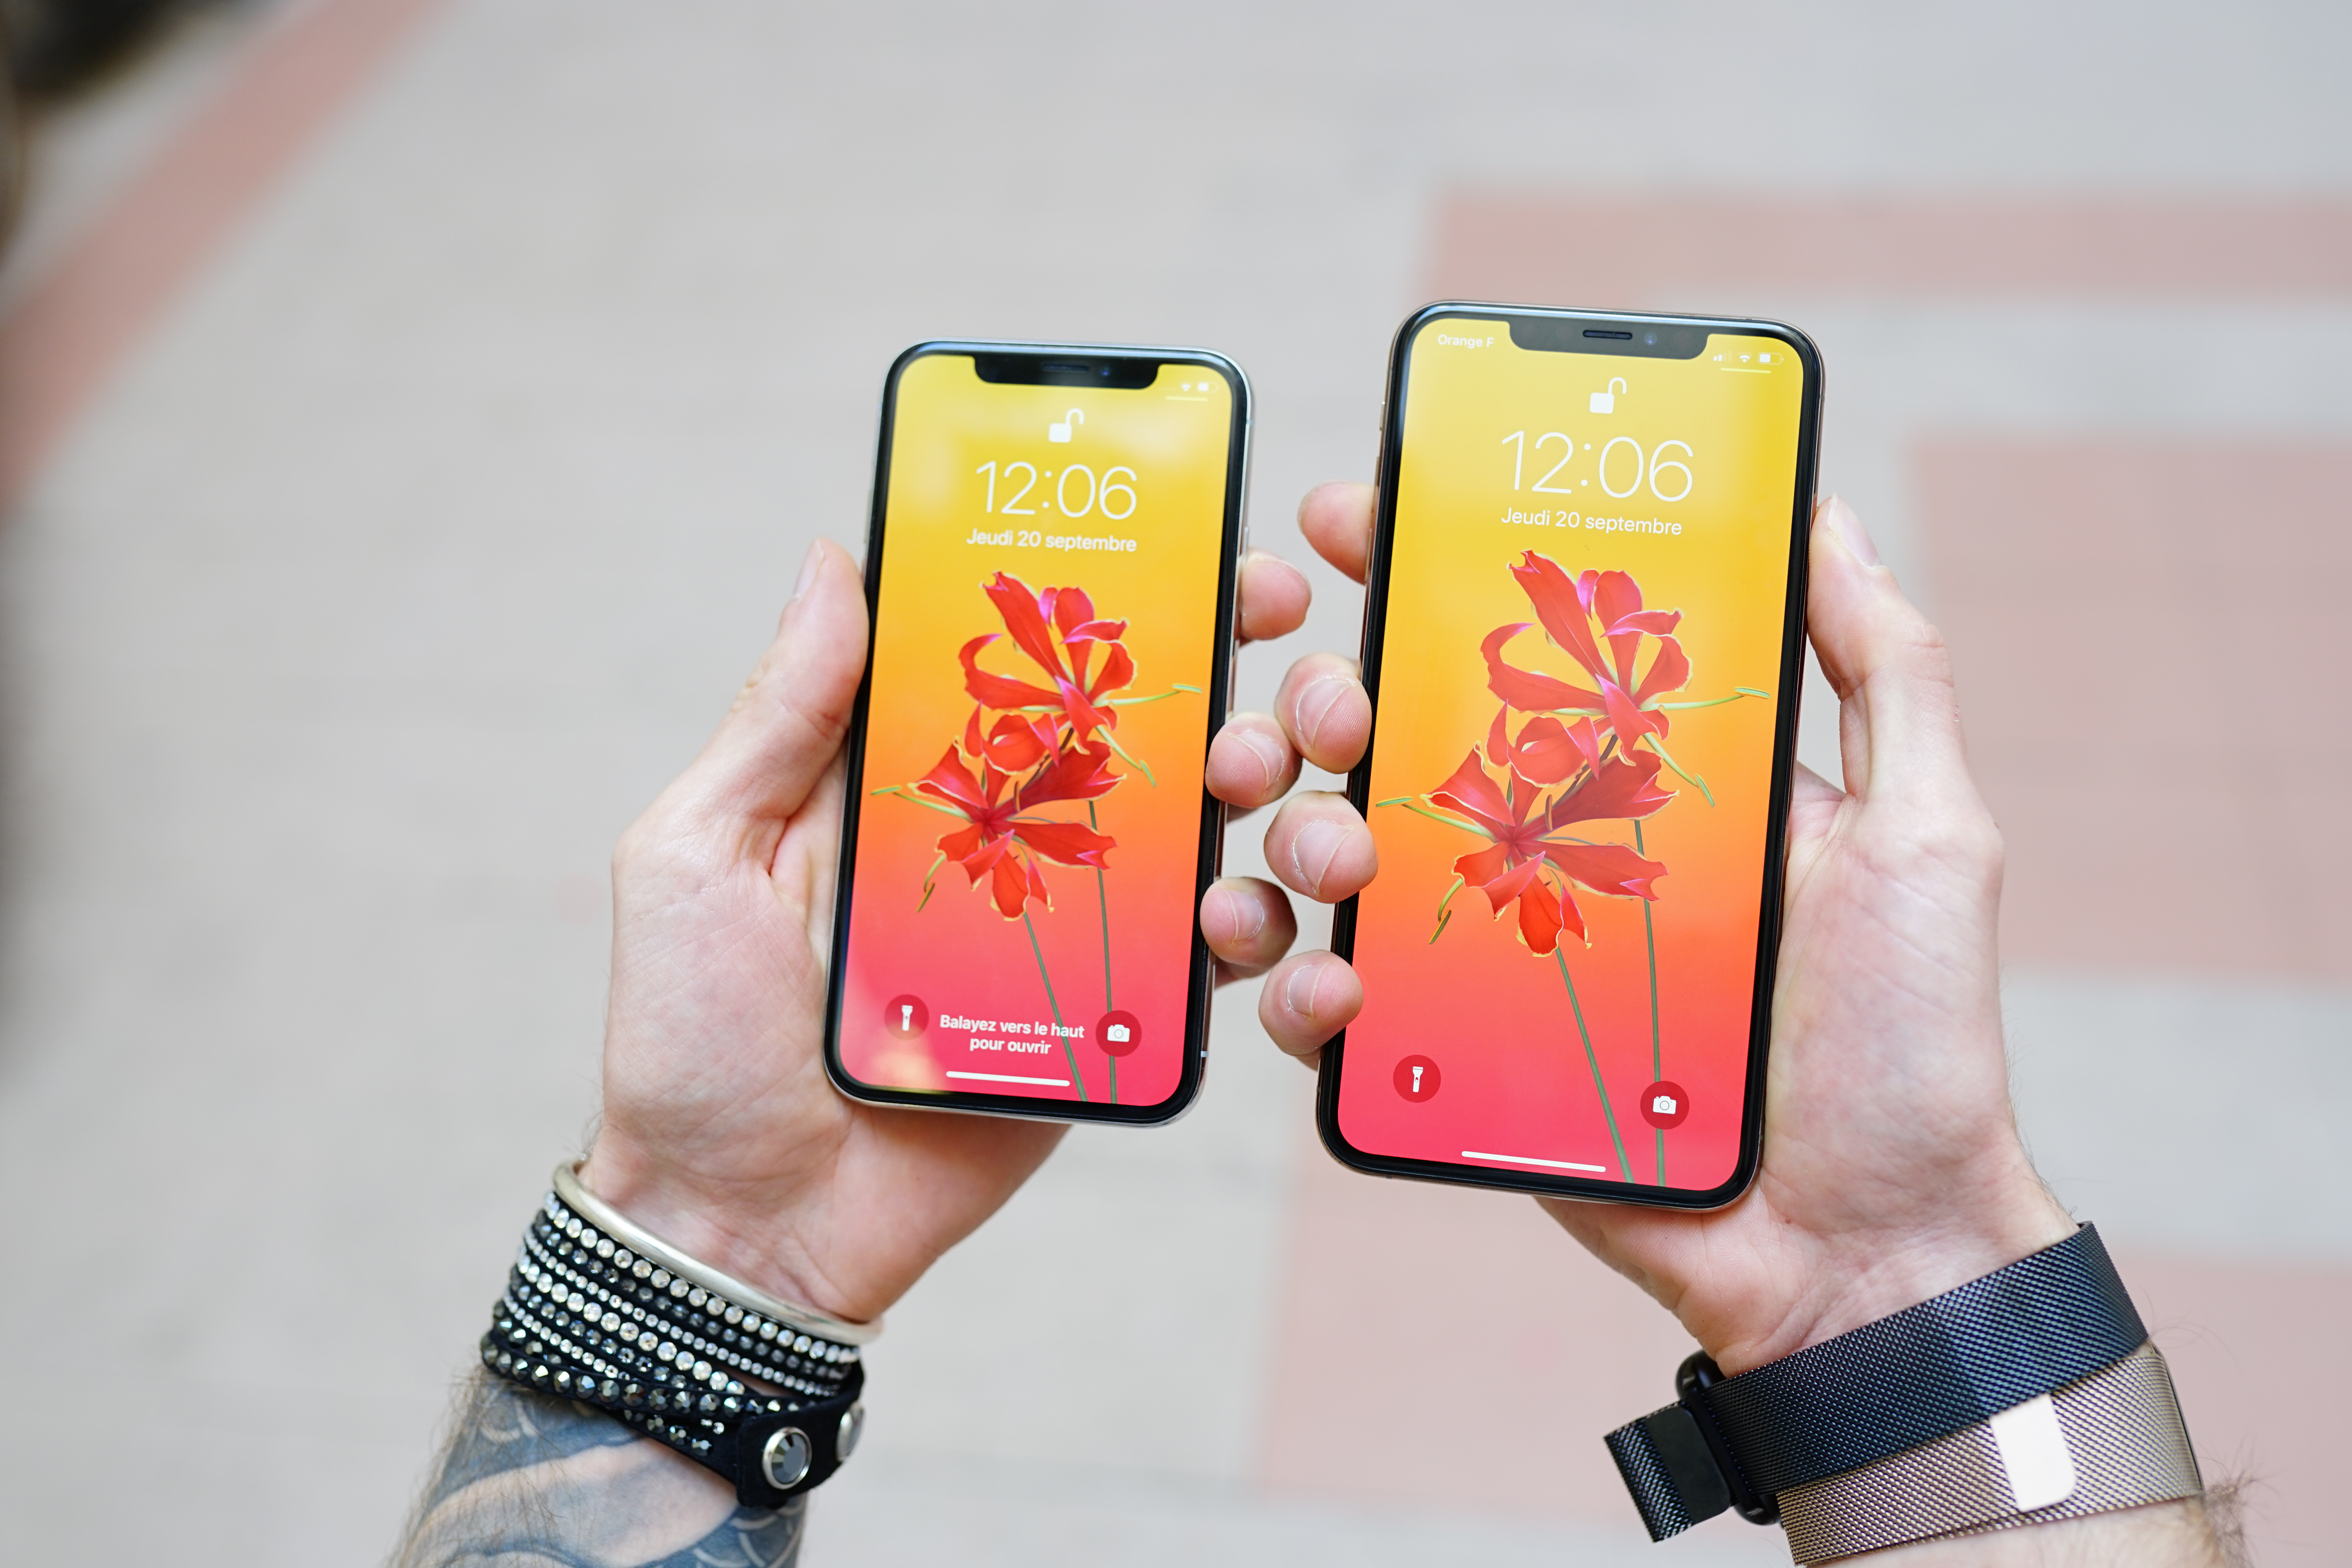 Surprise le coût de fabrication de l'iPhone XS Max est